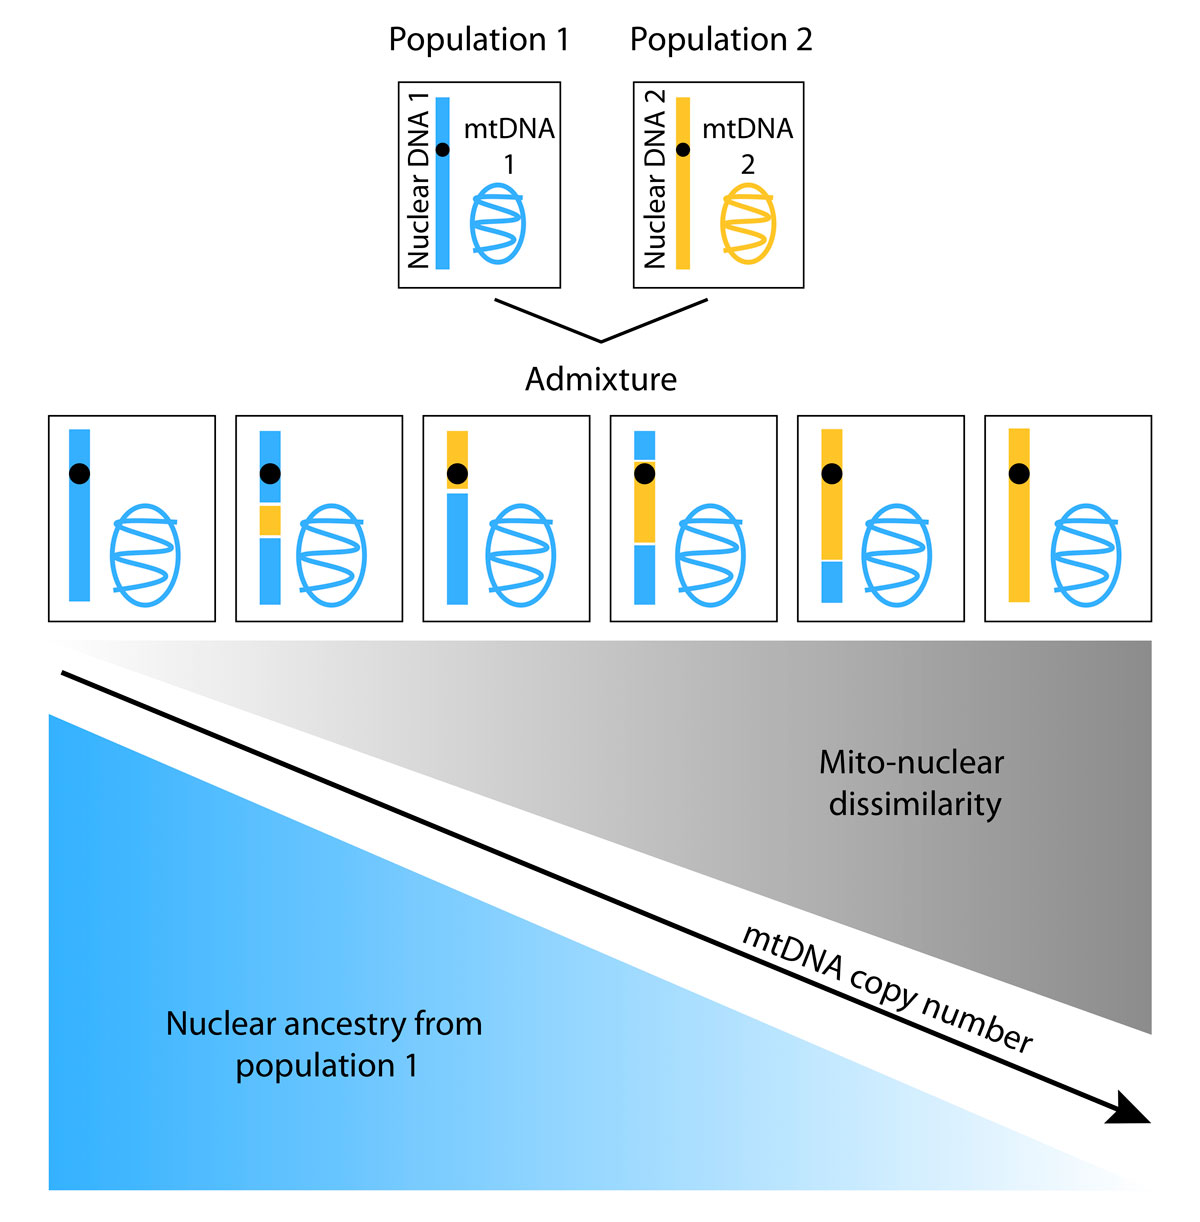 "Differences in geographic origin of a person's mitochondrial and nuclear genomes due to admixture can affect function of mitochondria, energy-generating organelles located inside cells that have their own separate genome. A new study reveals that mitochondrial DNA (mtDNA) copy number decreases with increasing ""mito-nuclear"" dissimilarity in geographic origins of the mitochondrial and nuclear genomes (e.g. as the proportion of nuclear DNA from population 1 decrease). Image credit: Arslan Zaidi."